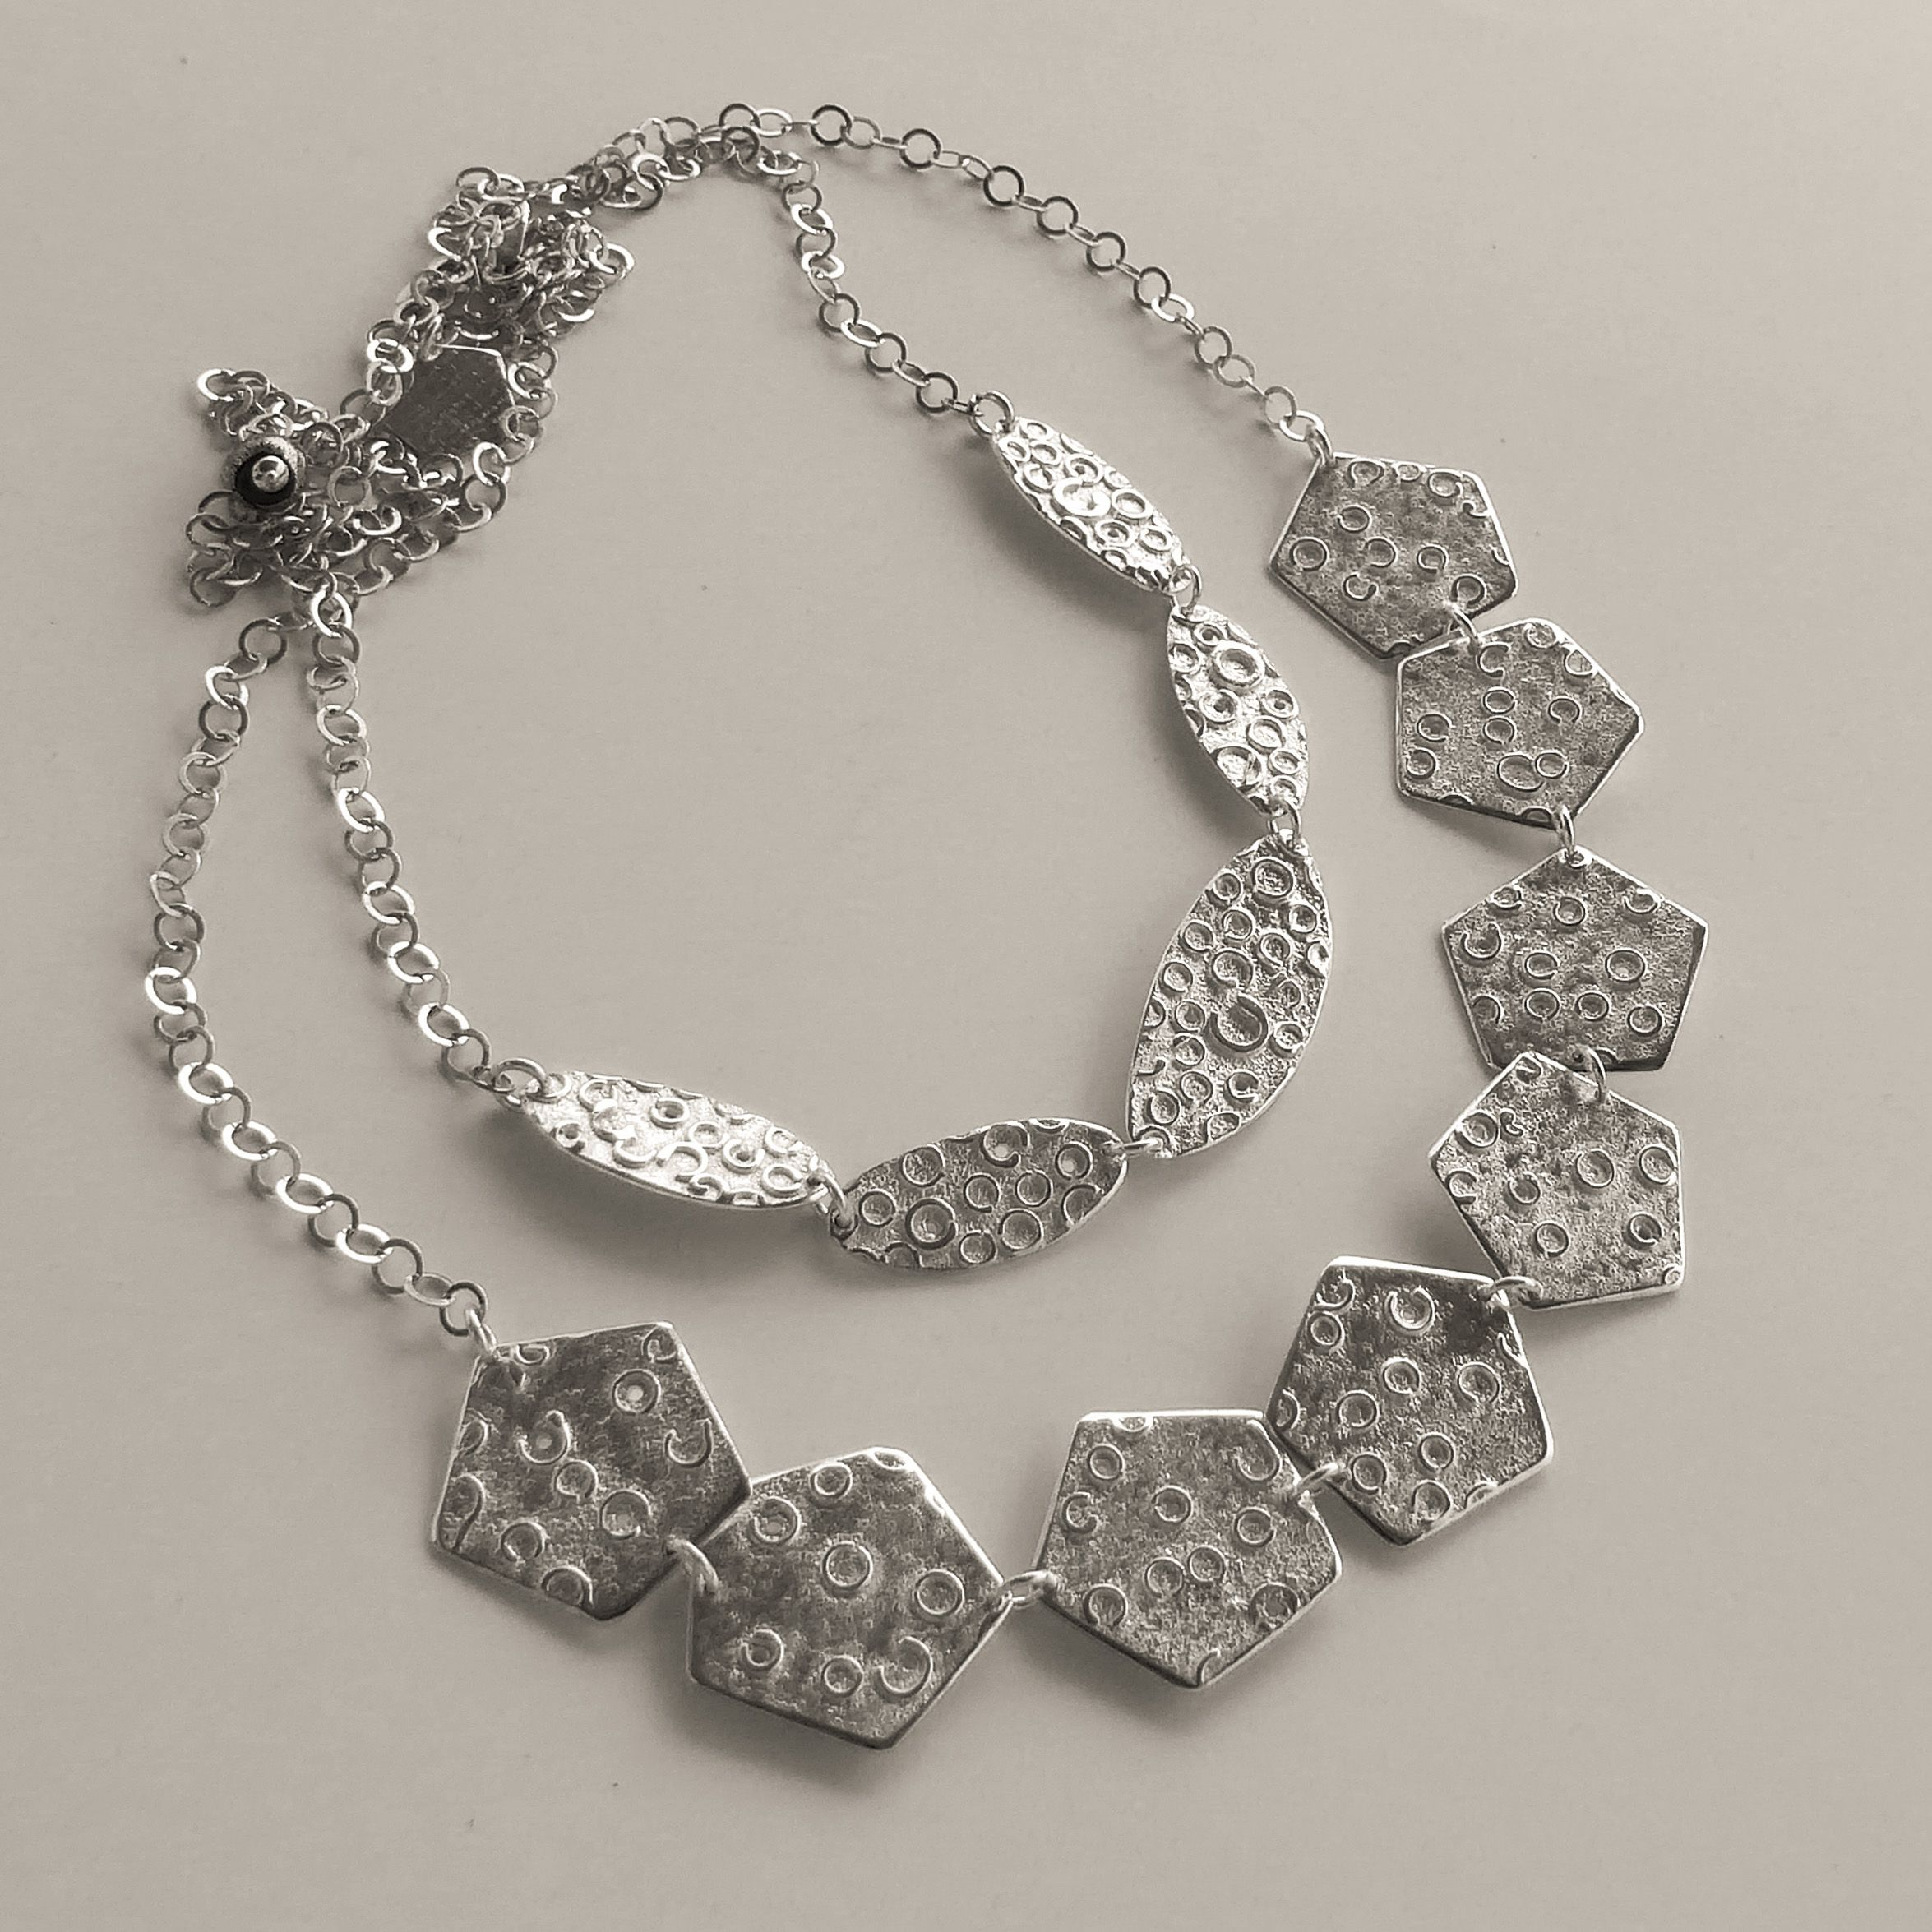 Pentagon and Oval necklaces from the Dandelion series . #jewellery #contemporaryjewellery #silvernecklace #jewelery #contemporarycraft #handmadejewellery #flowerjewellery #glosguild